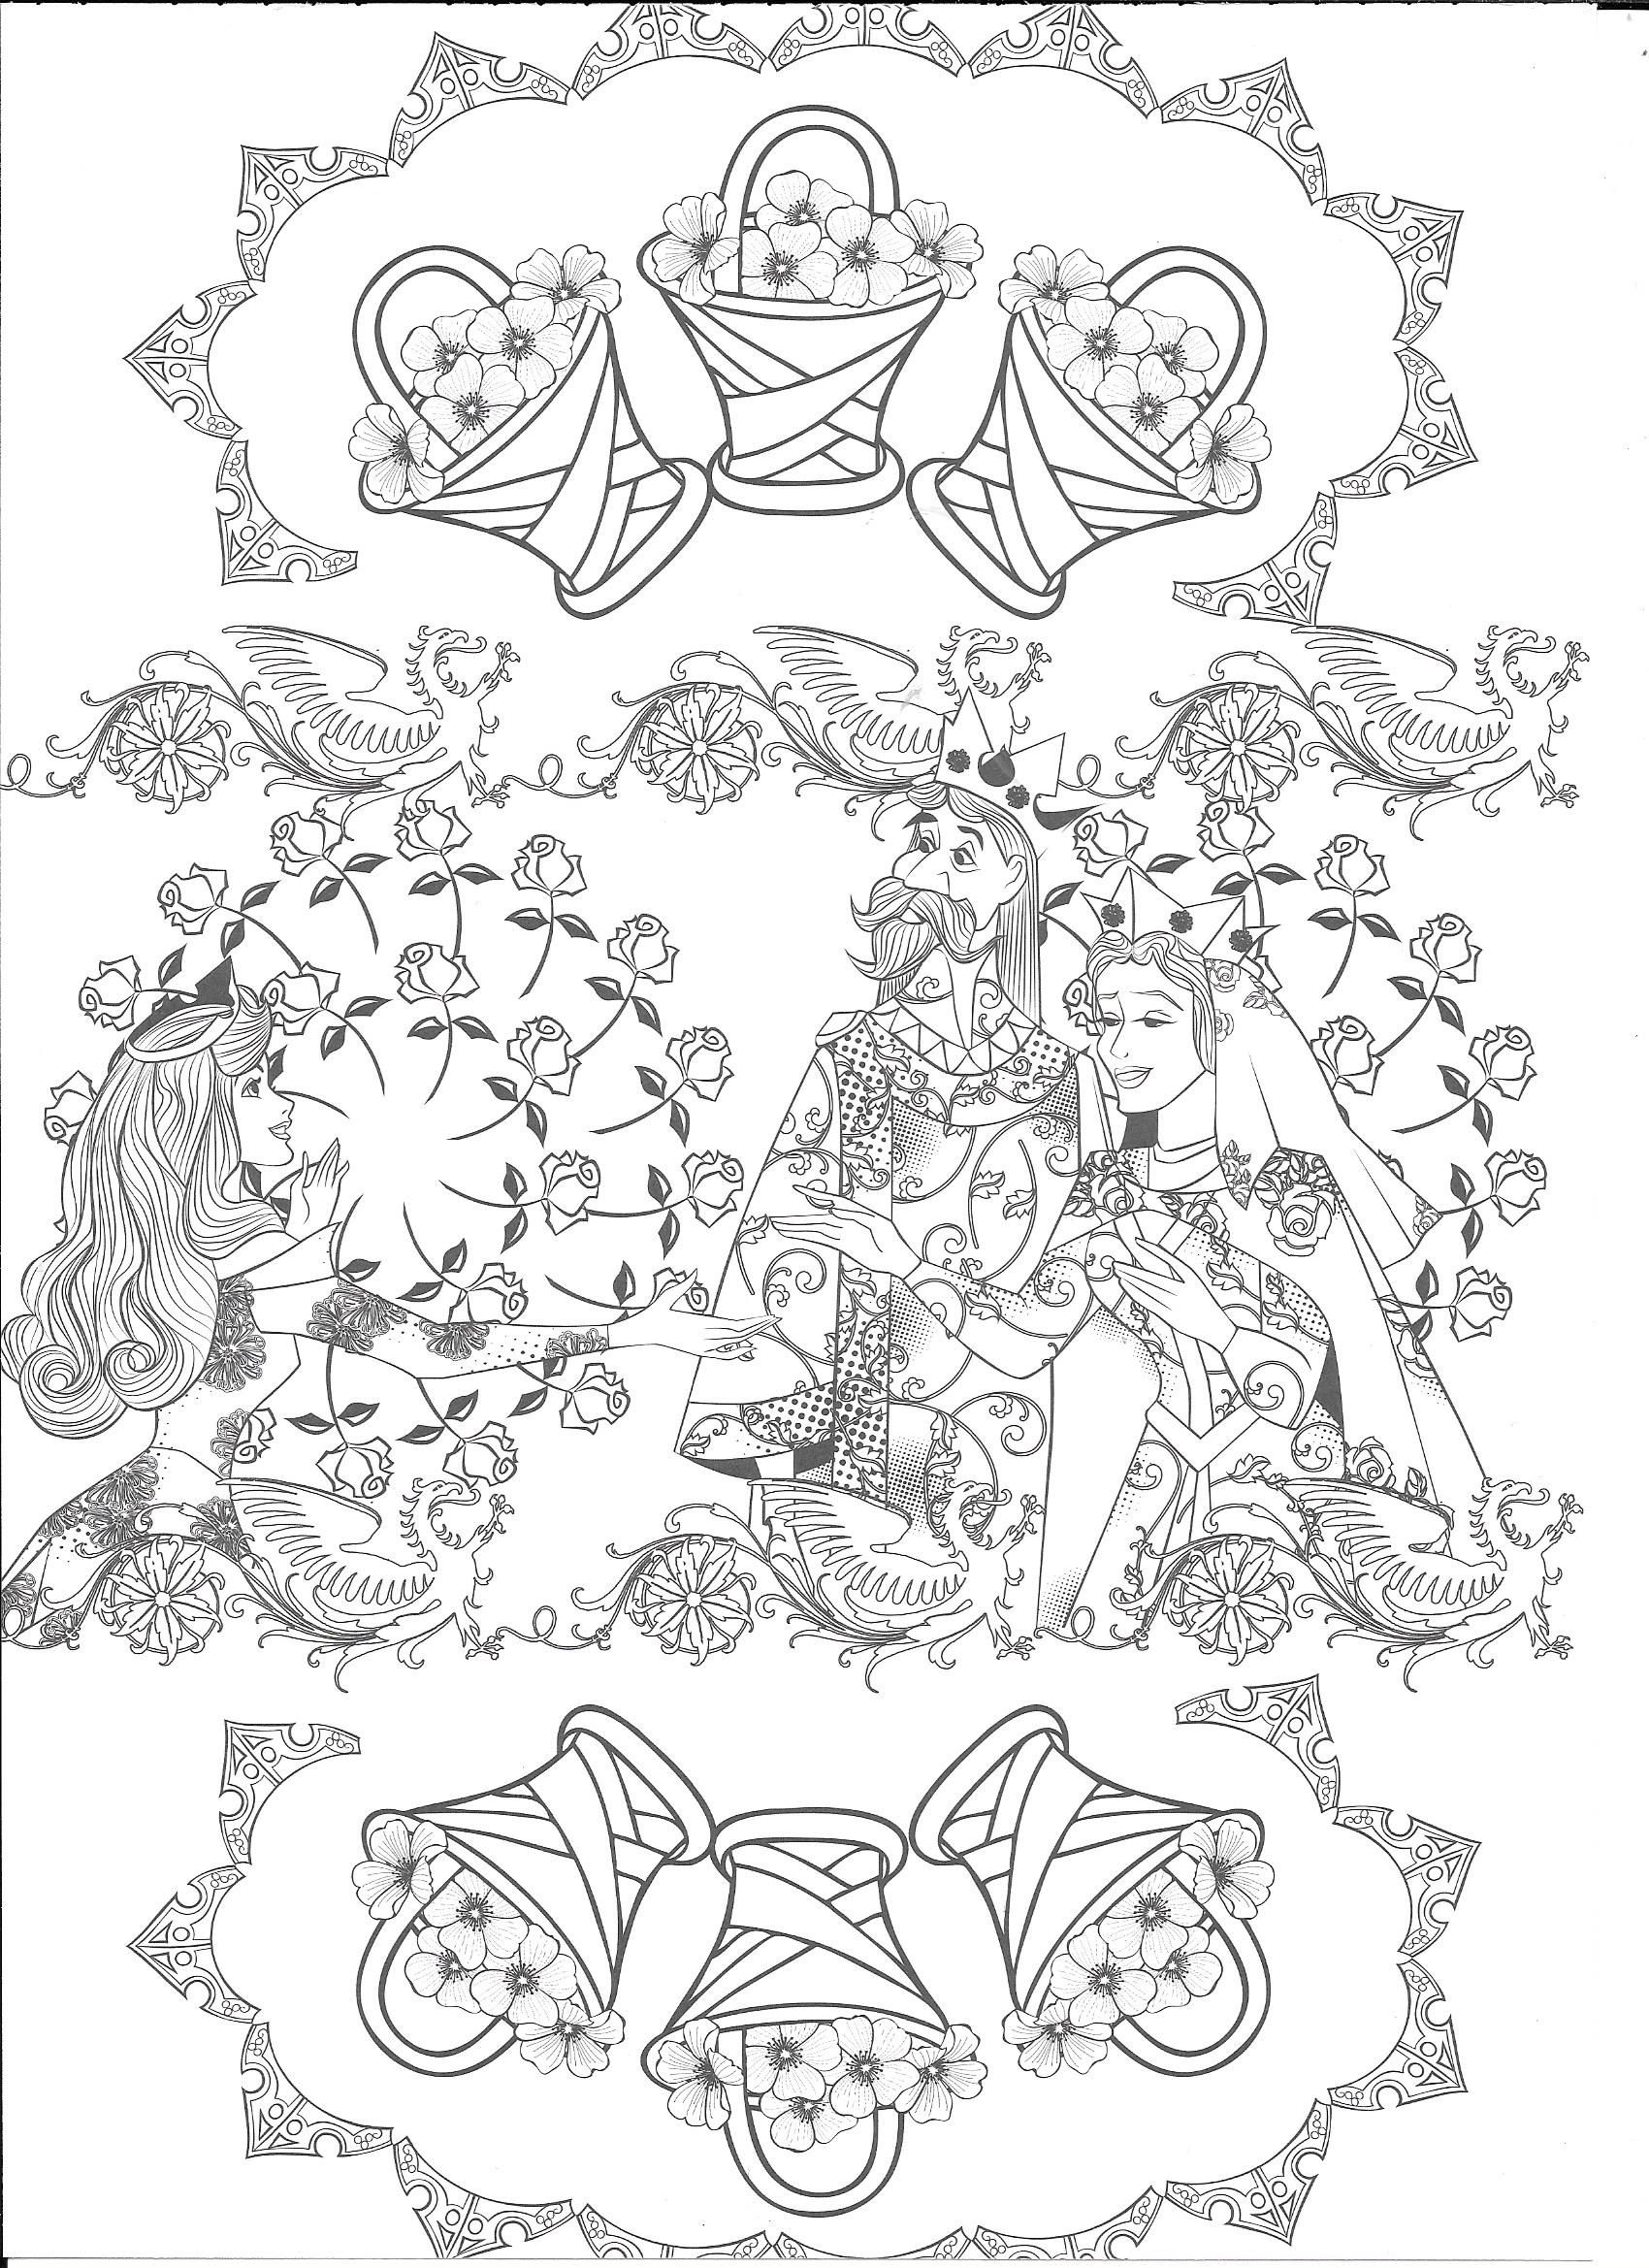 Pin by Ariel on aa coloring | Coloring pages to print, Princess ...